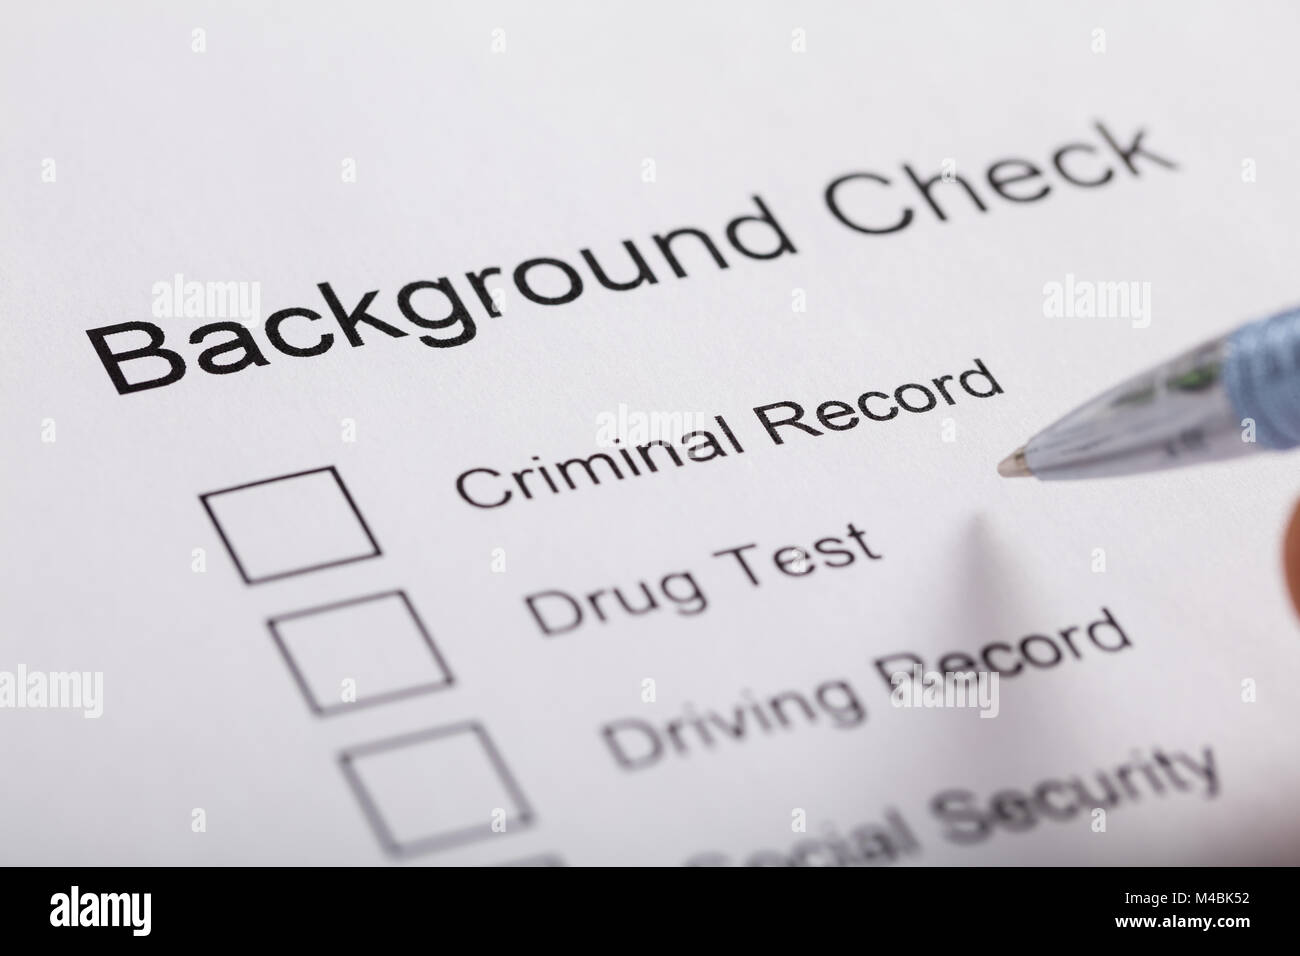 Download 42 Background Check Air Force HD Terbaru